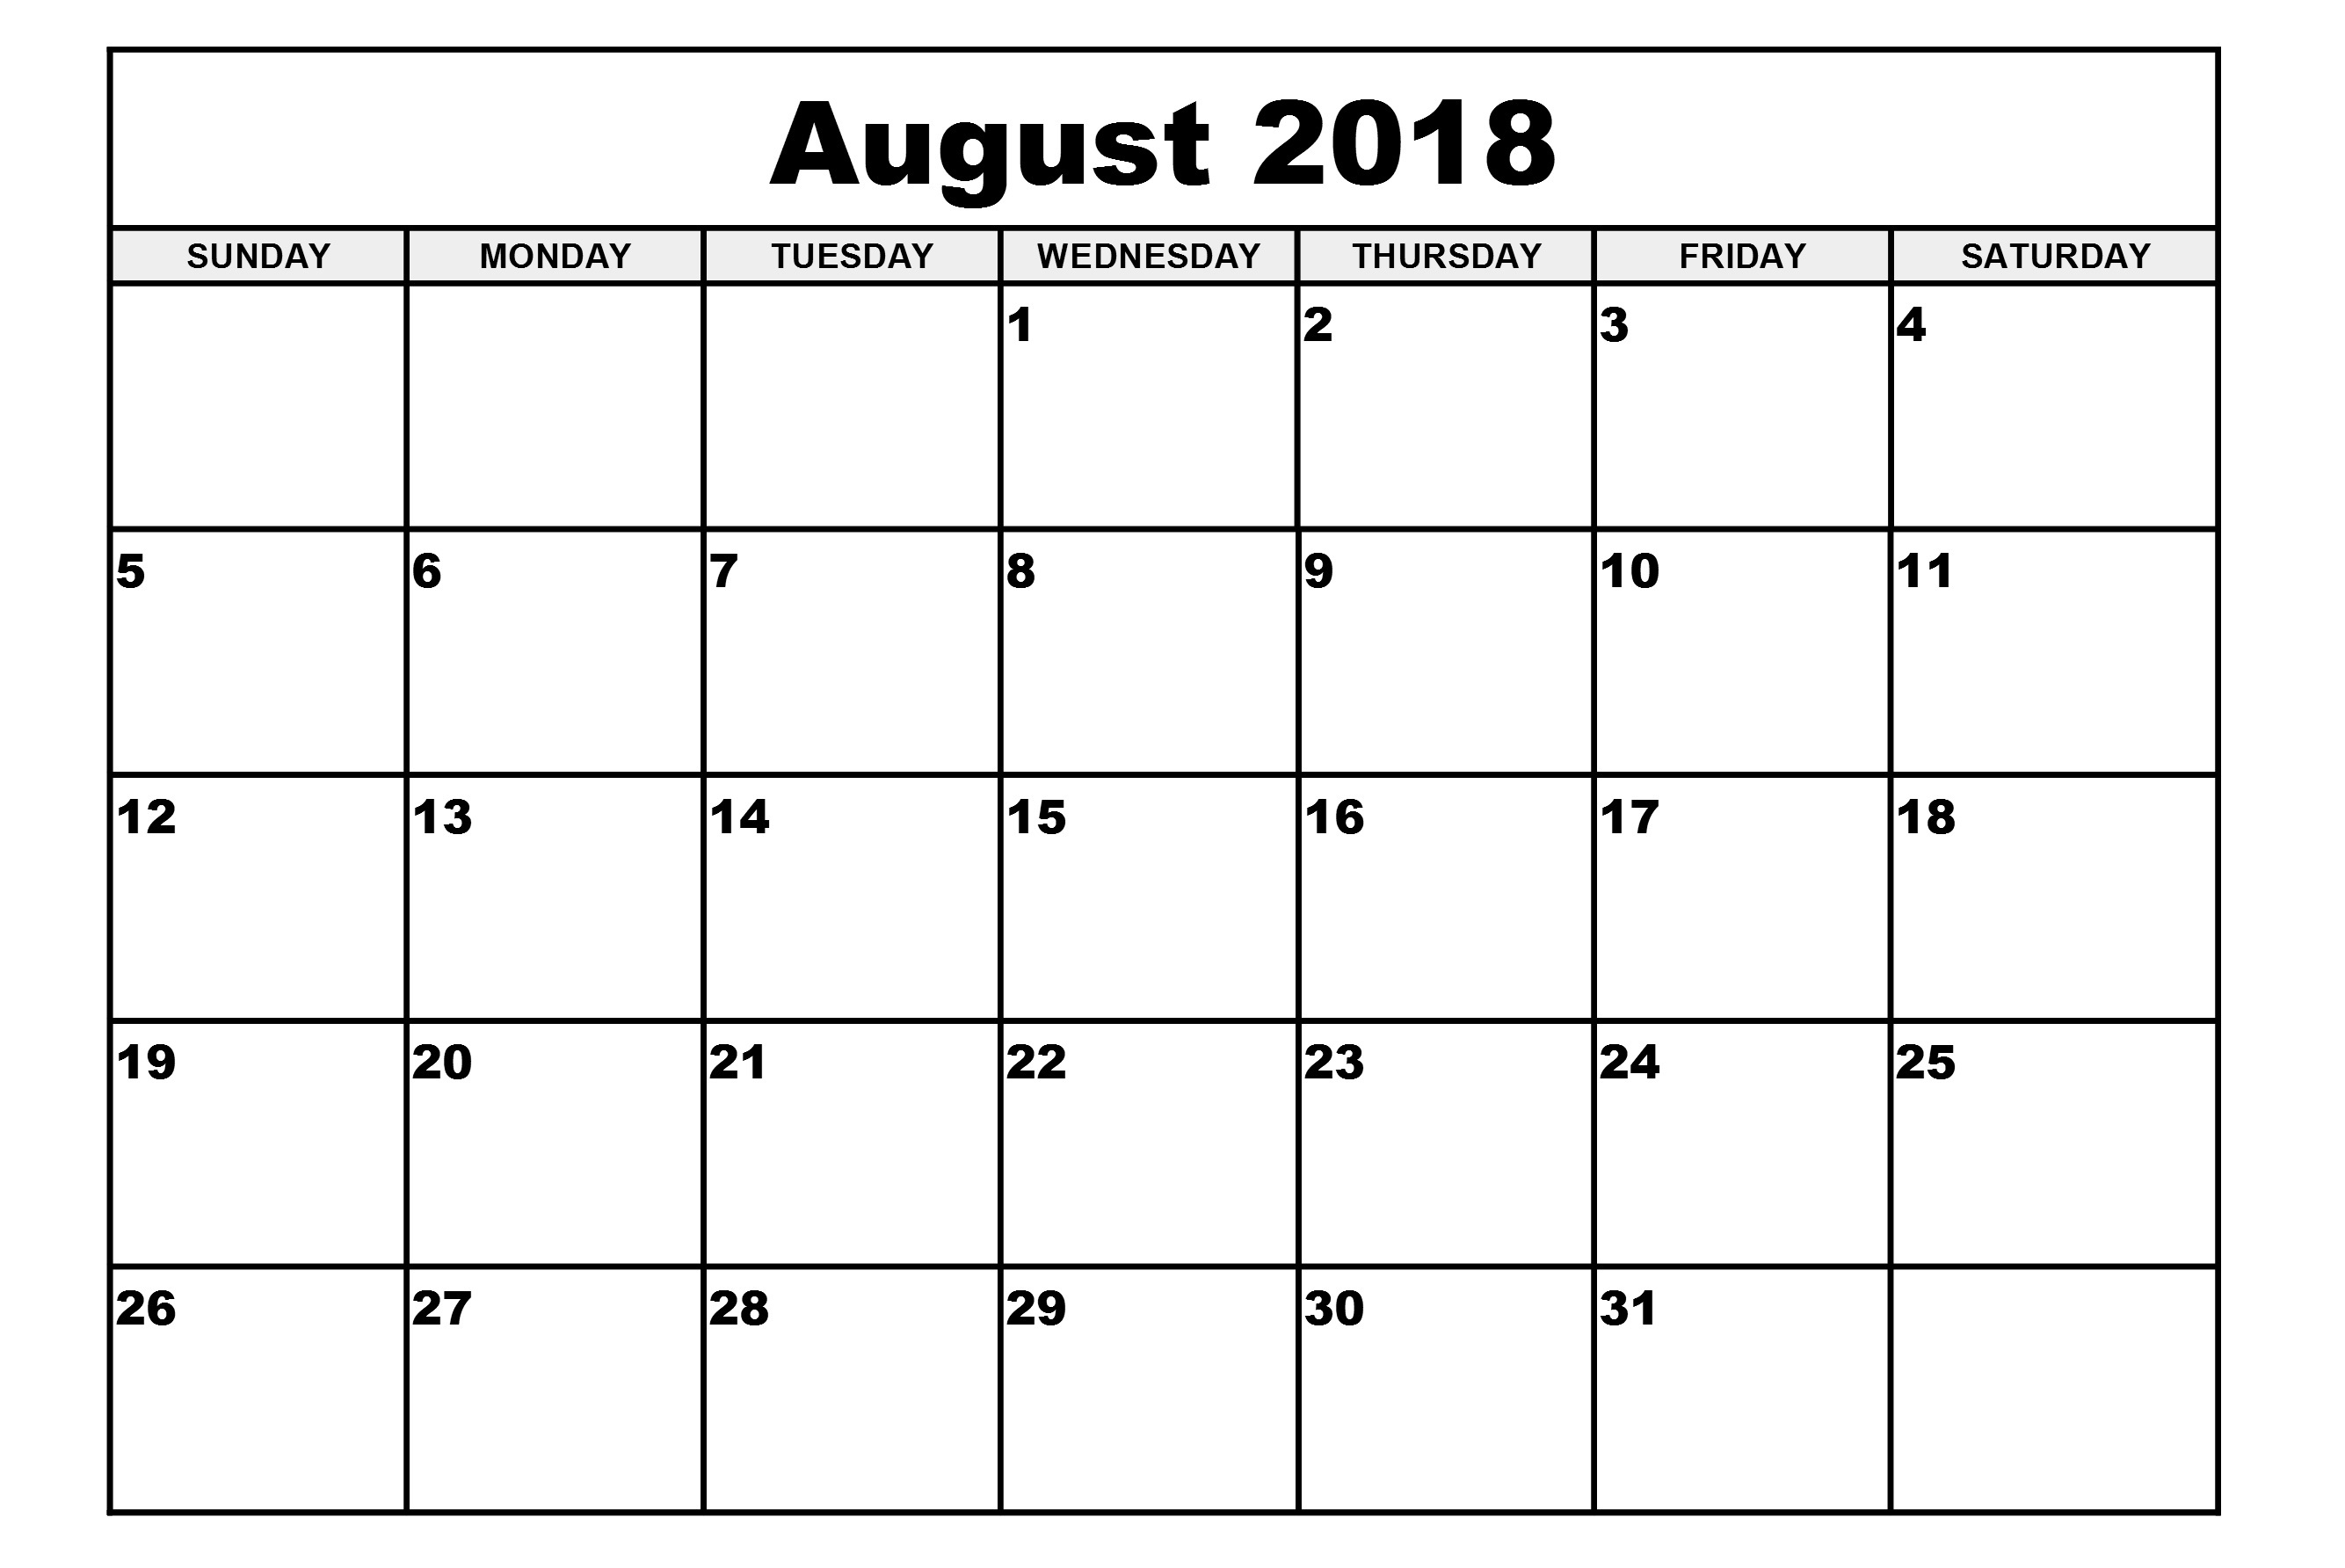 august calendar 2018 printable with holidays free hd images Calendar August 2018 Printable Free erdferdf